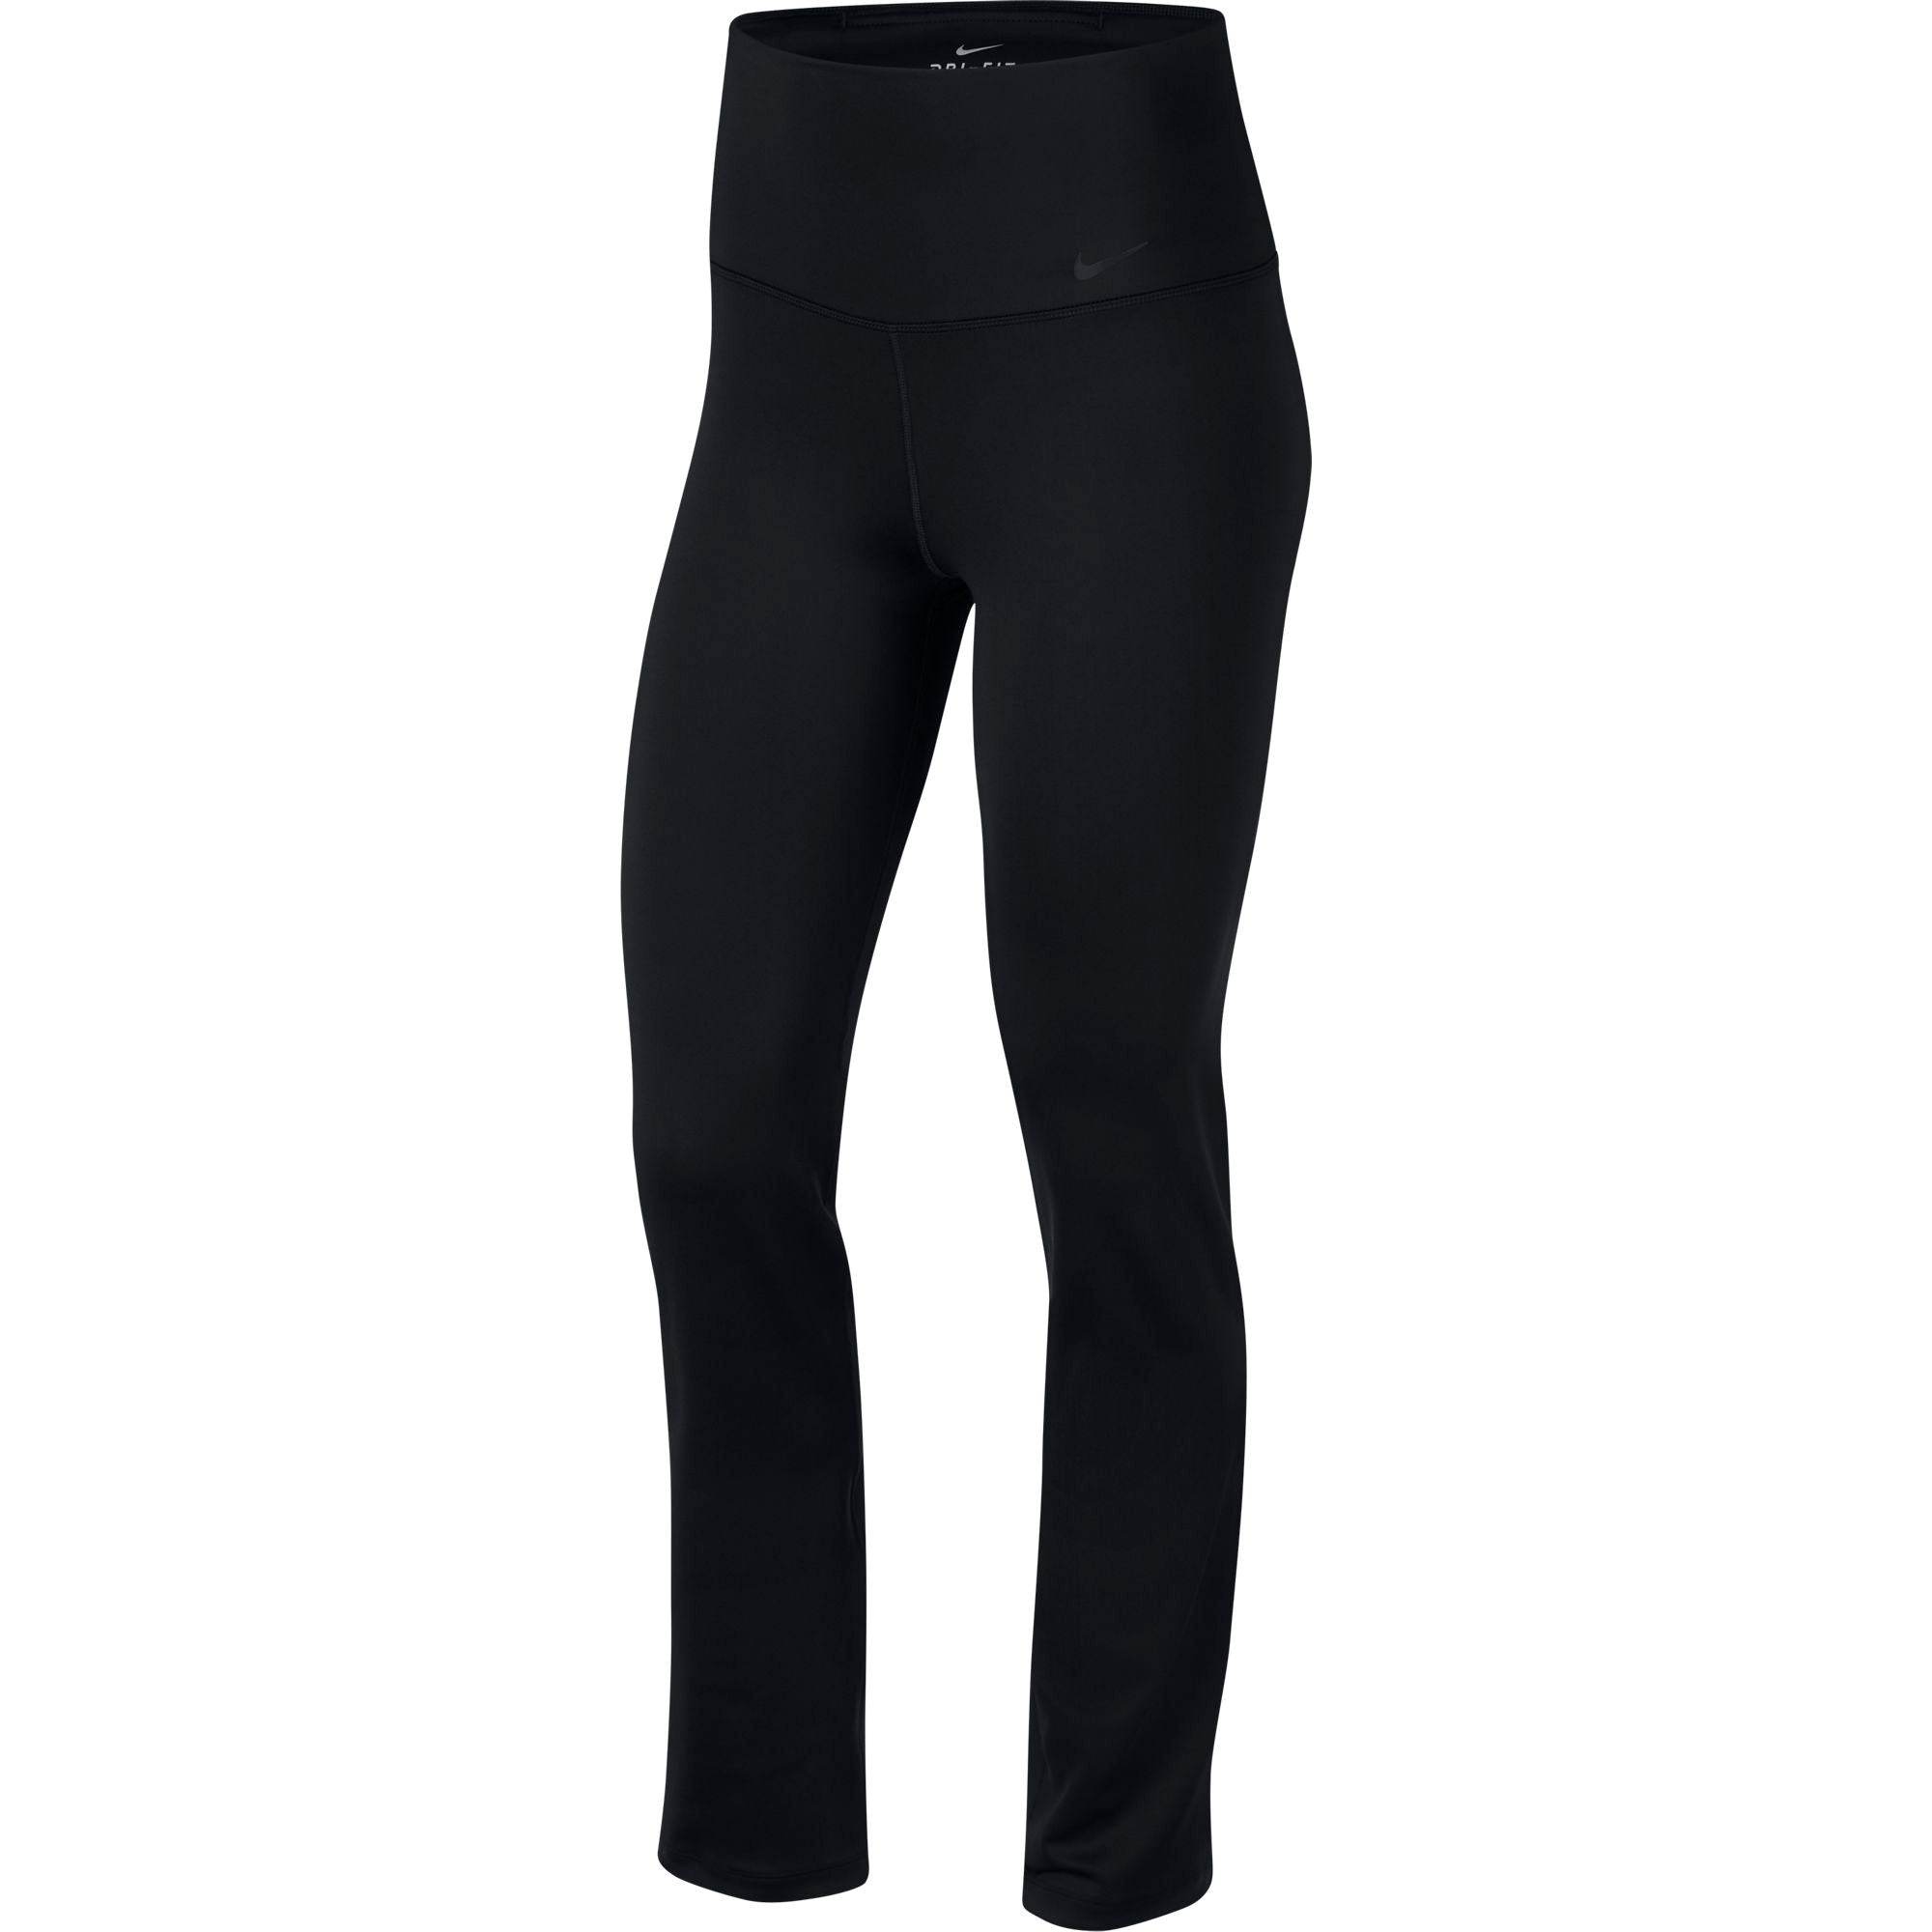 Nike Womens Power Training Pants - NK-AQ2669-010